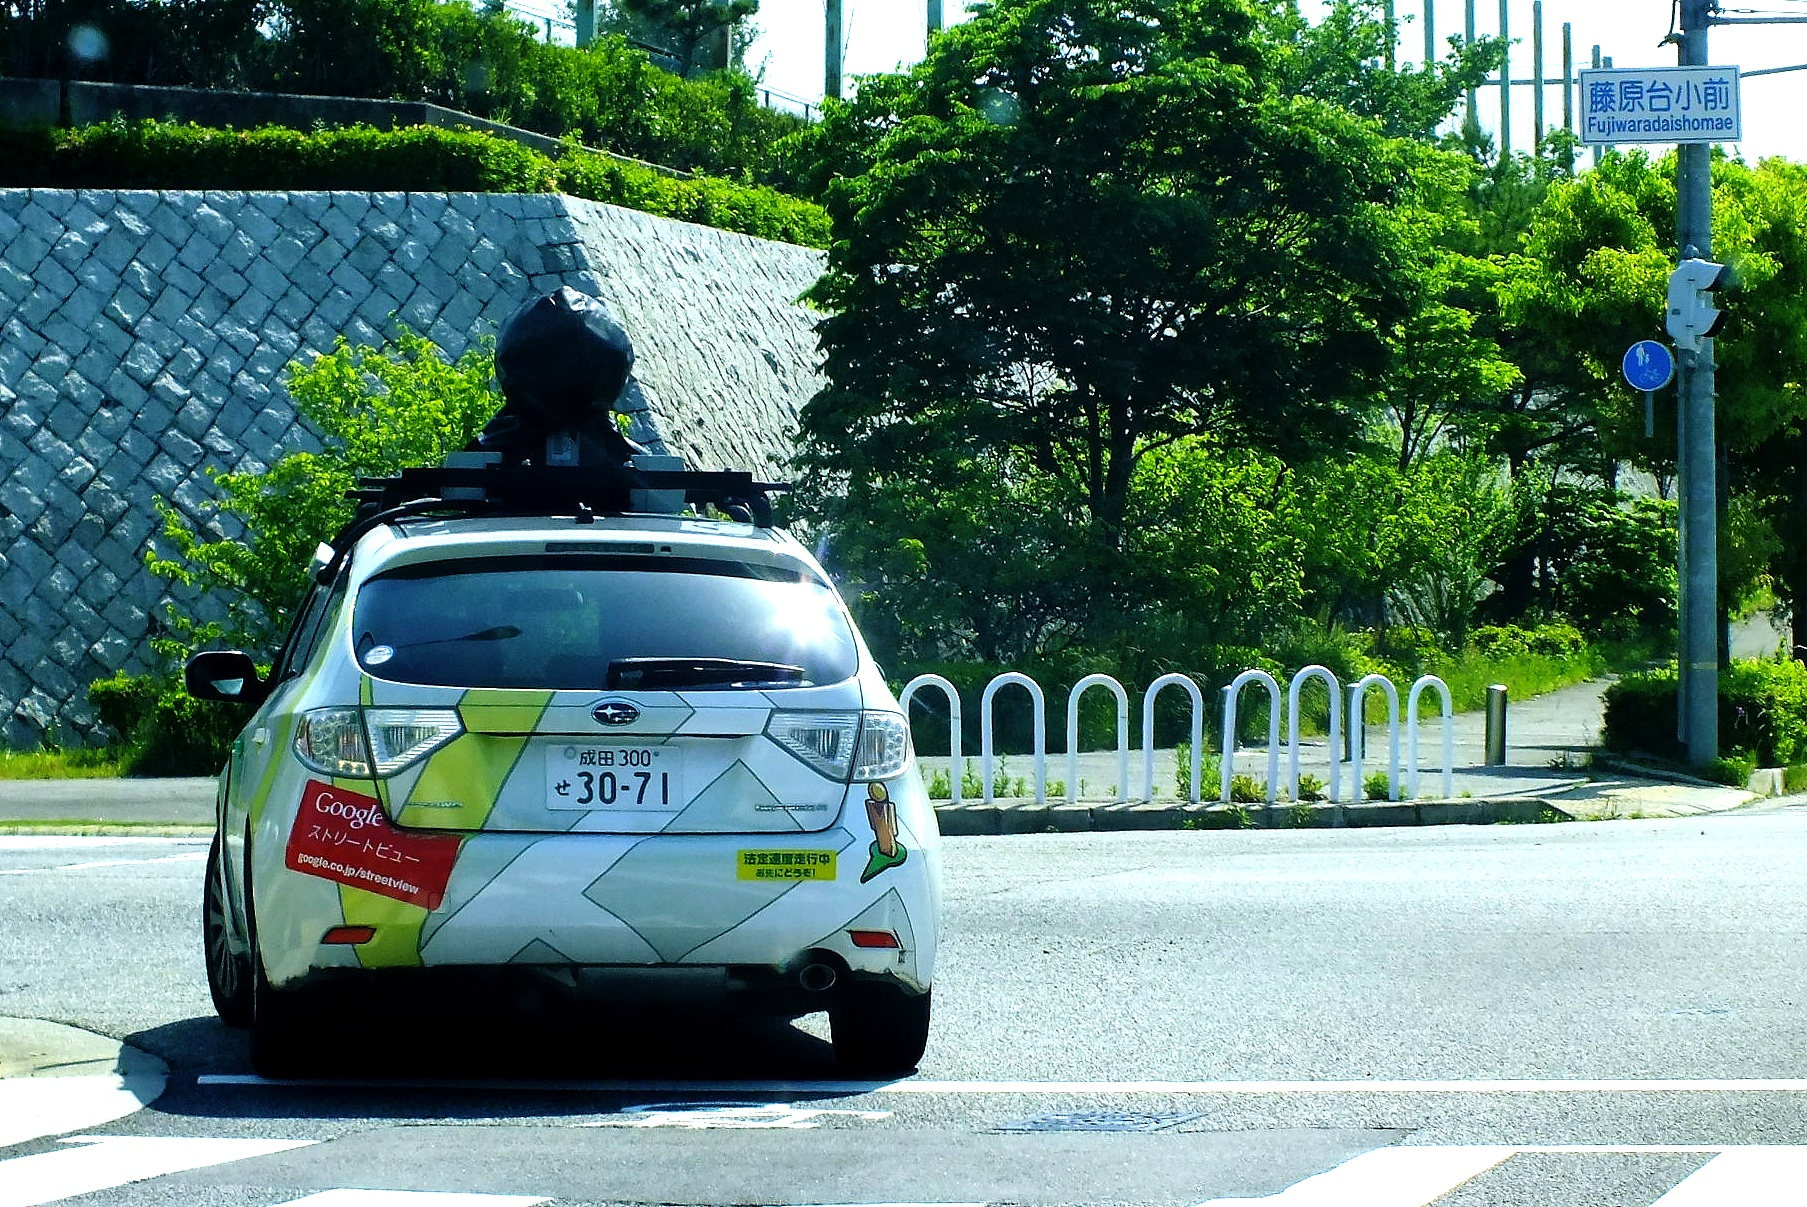 Cars On Line >> File:2015-05-20 Google Street View camera cars in Kobe,Hyogo,Japan、神戸市立藤原台小学校前のグーグルストリートビューカー ...